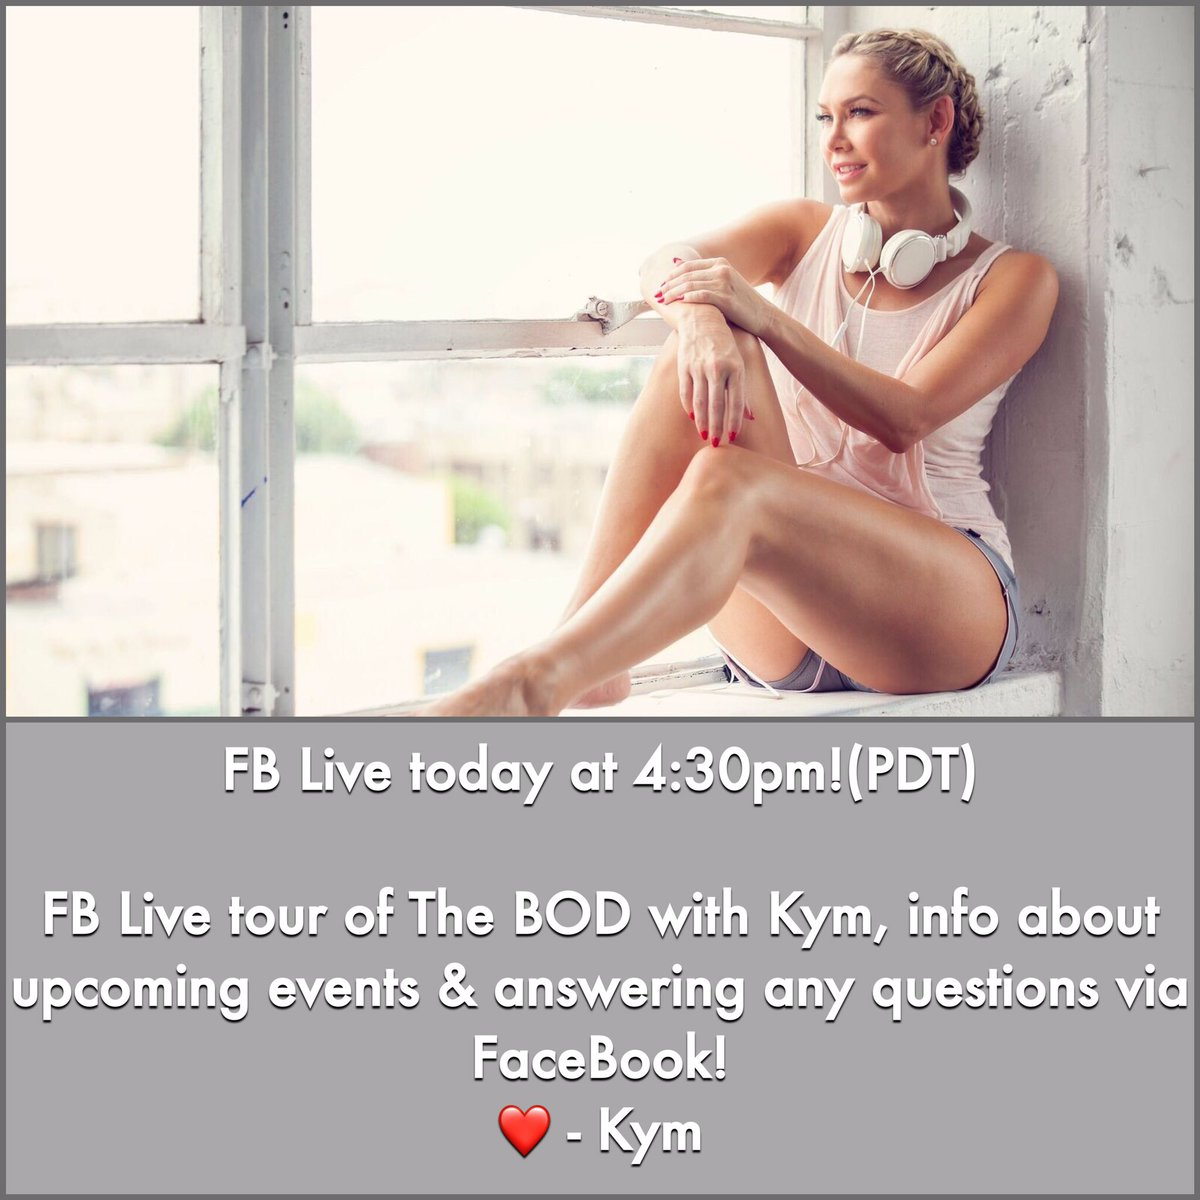 I'll be doing a face book live at 4.30pm! A behind the scenes look @thebodbykym hope to see you soon xox https://t.co/Mgf8Yn5h4m